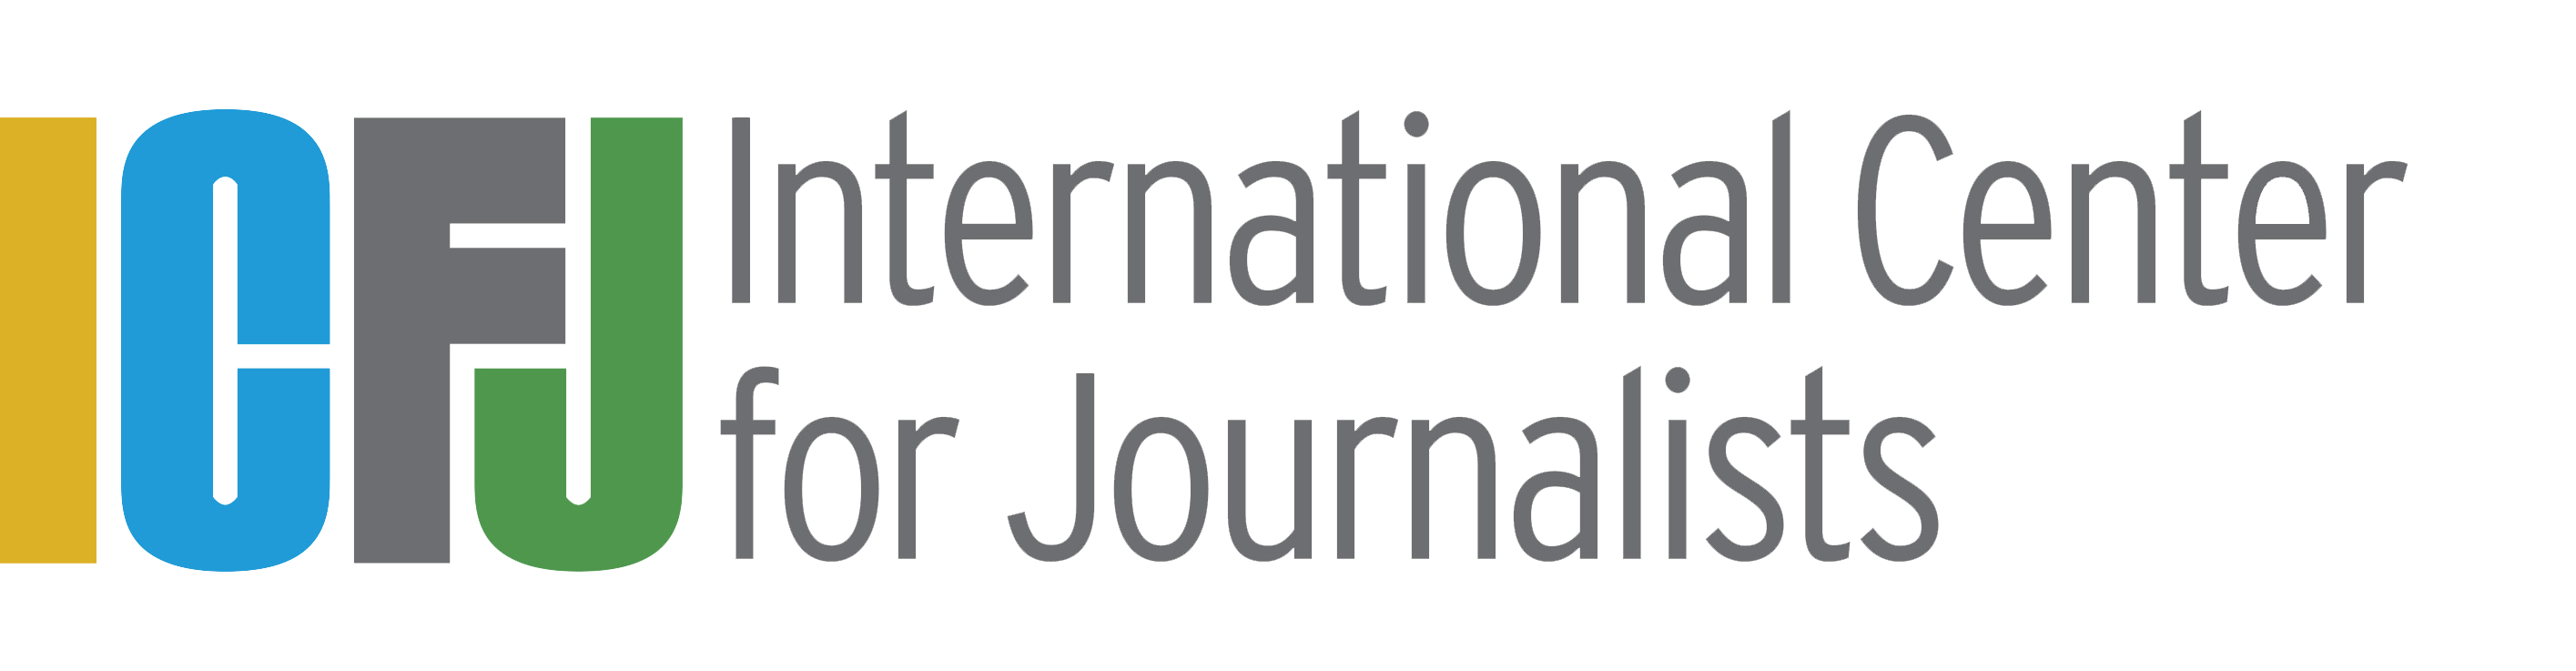 International Center for Journalists